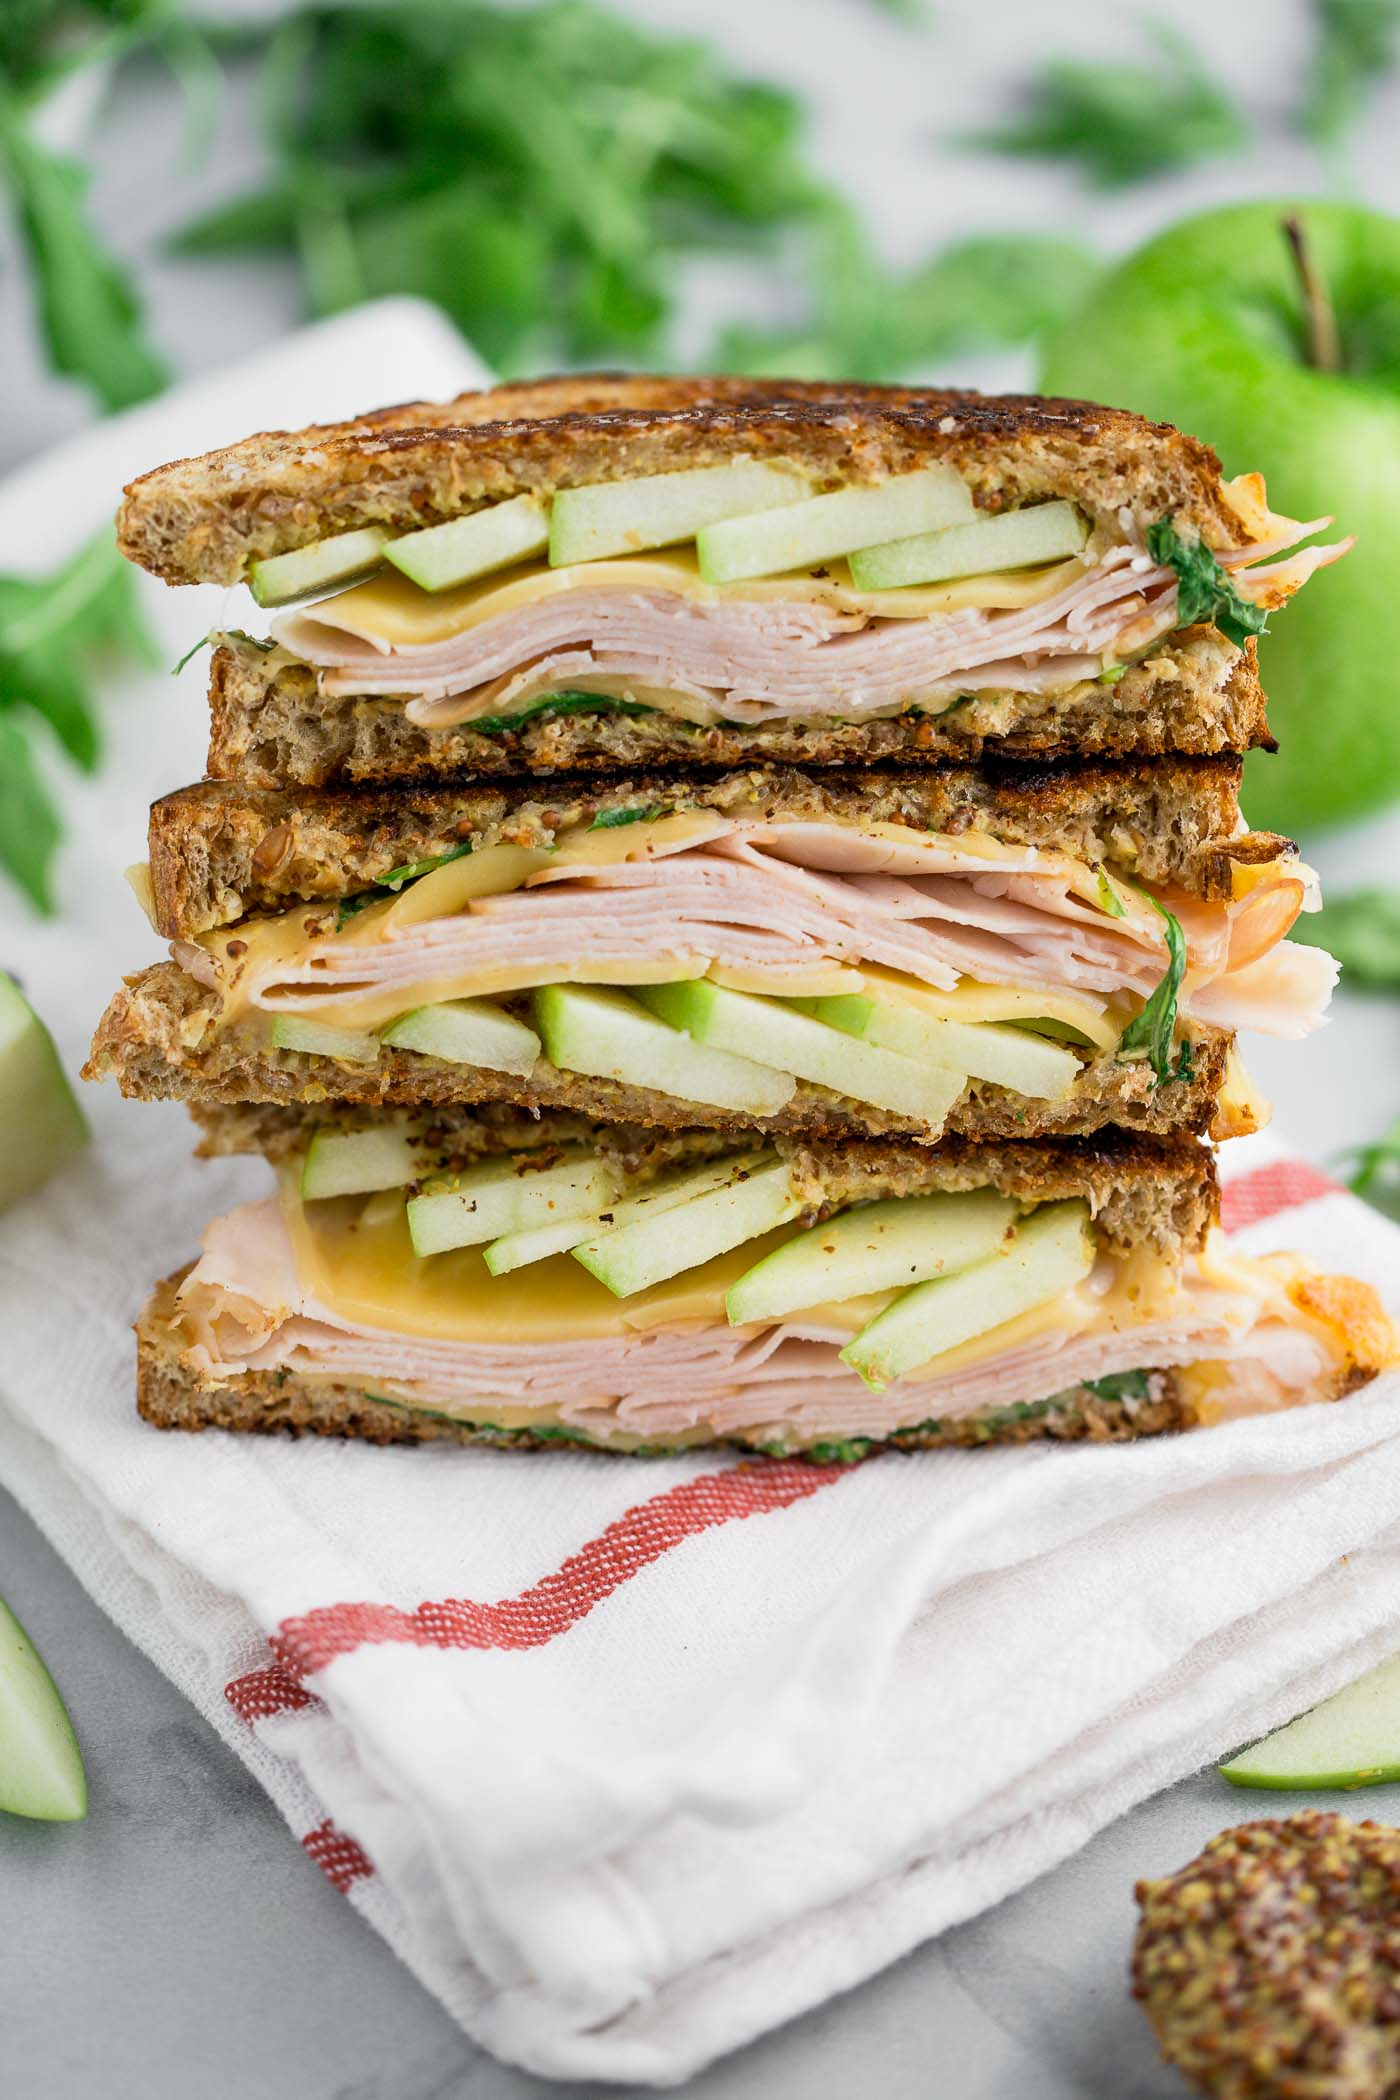 autumn grilled cheese sandwiches stuffed with fall flavor! hearty whole-grain bread slathered in whole grain mustard & sandwiched around melty gouda, smoked turkey, & crisp granny smith apples. the only thing missing is a big dunk into a bowl of tomato soup! #playswellwithbutter #comfortfood #grilledcheese #grannysmith